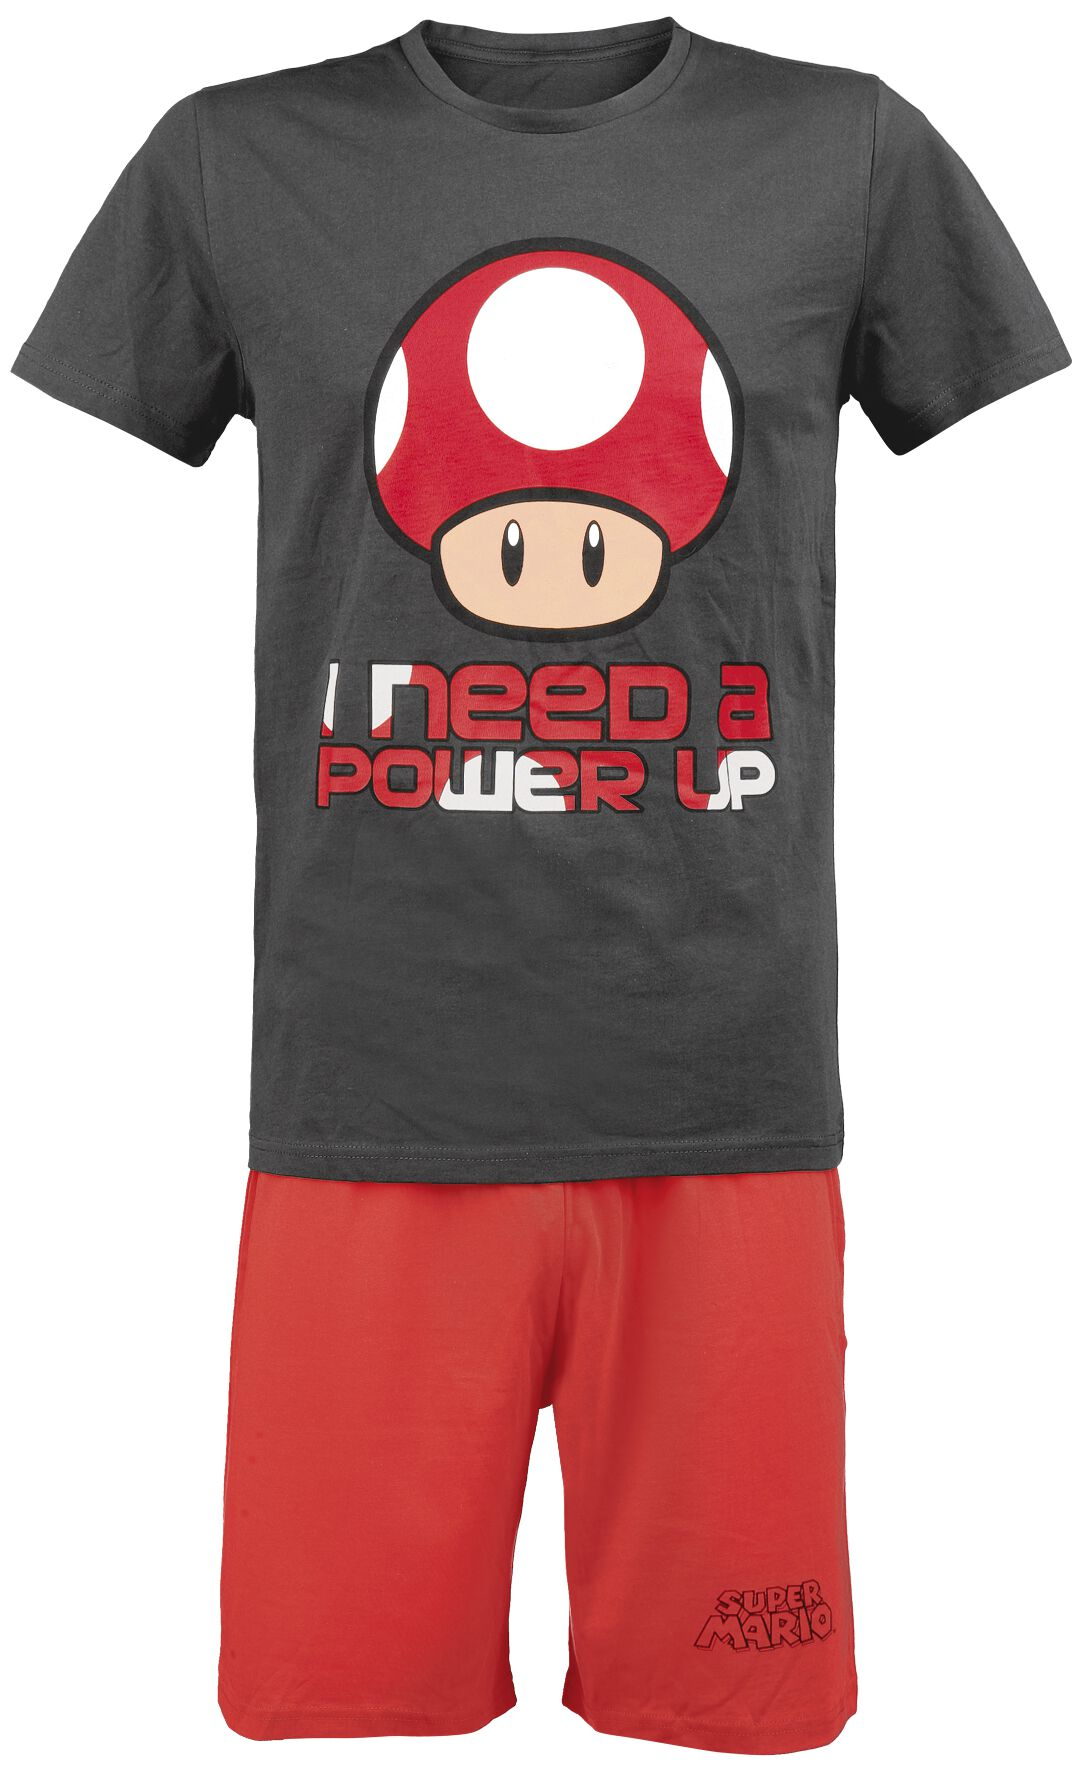 Image of   Super Mario I Need A Power Up Pyjamas grå-rød